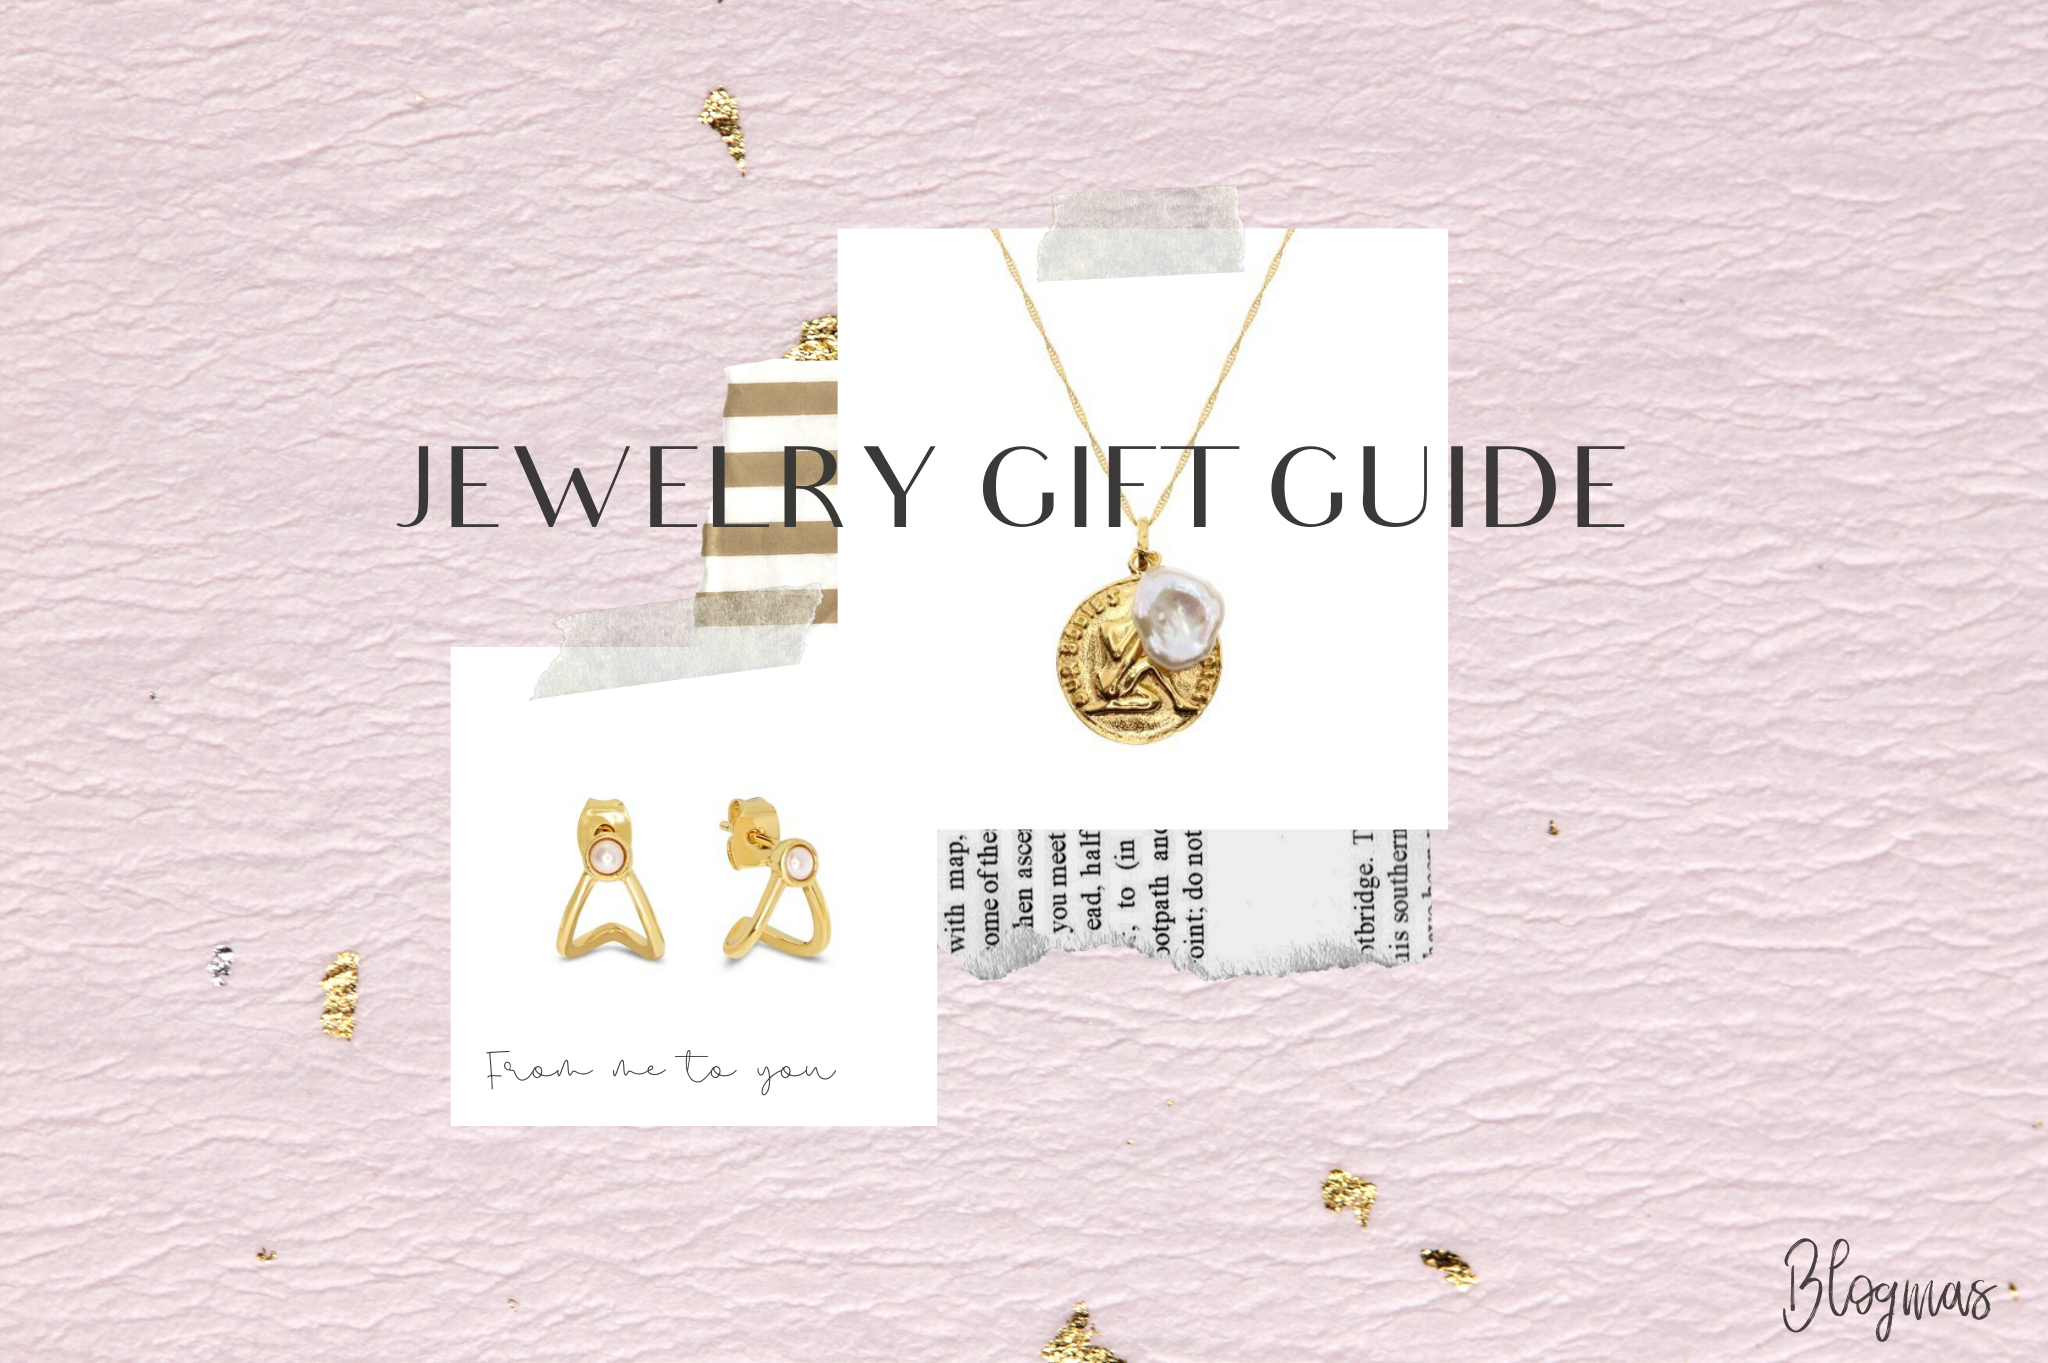 jewelry gift guide christmas gift guide for her what to buy women for christmas